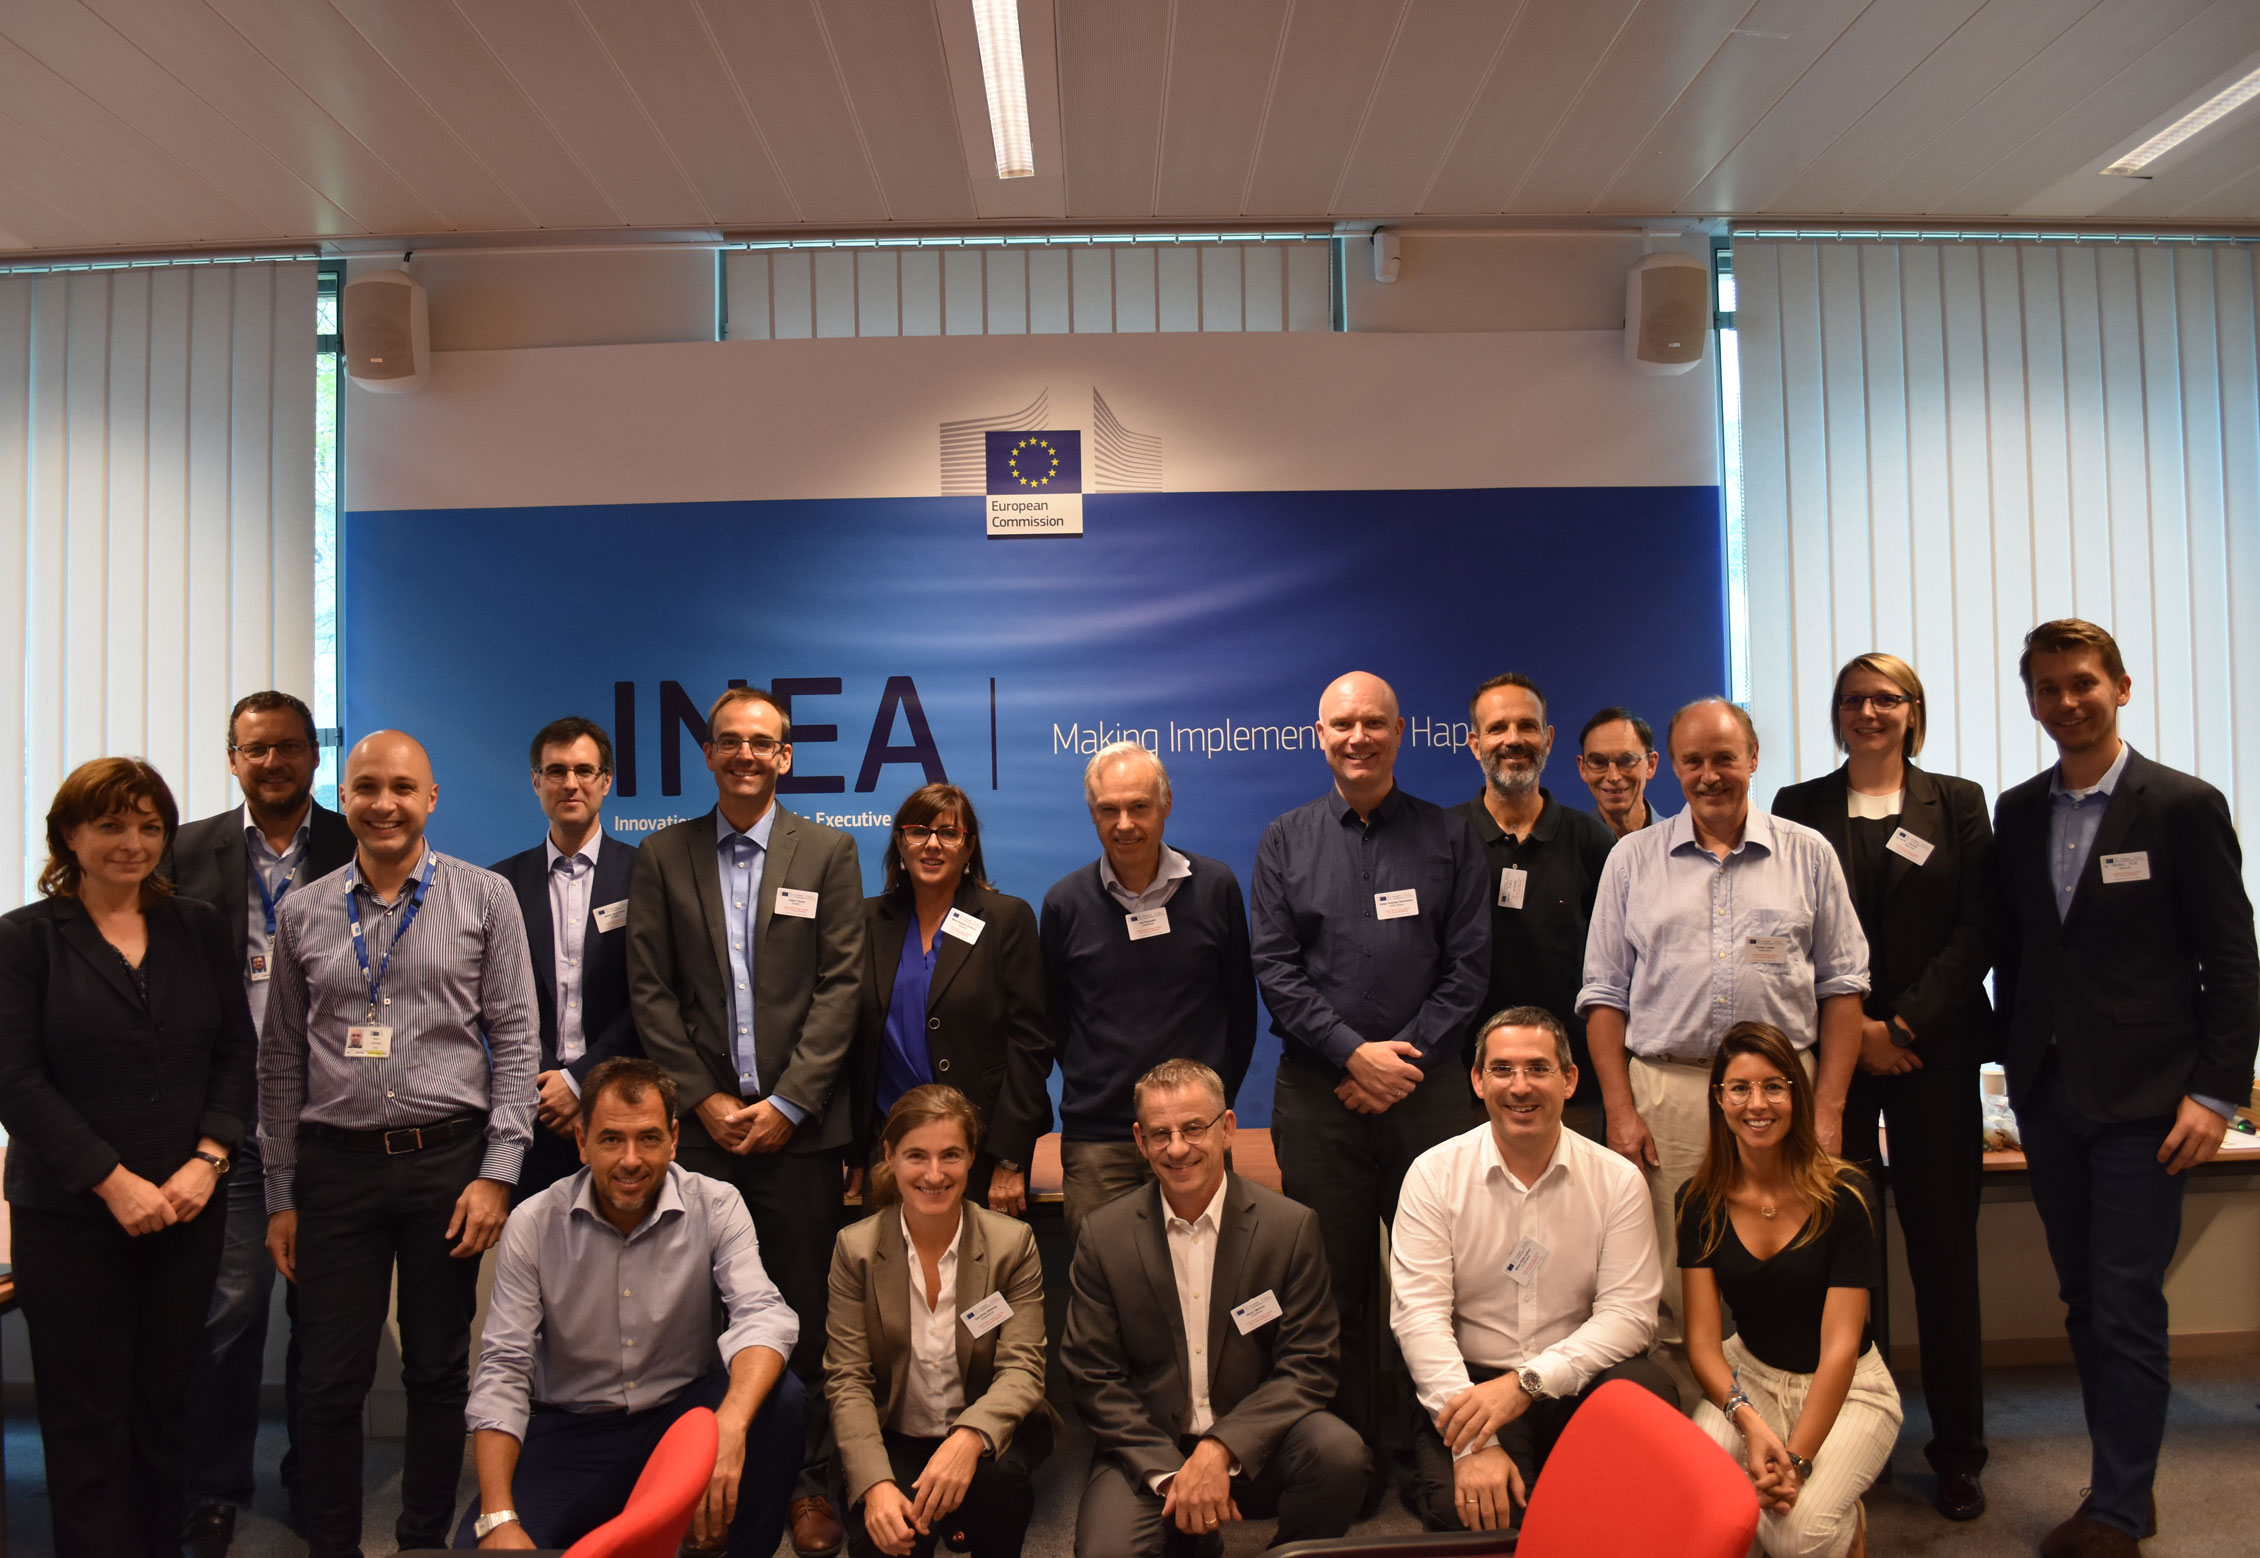 inea-web ROMEO, presents at the 2nd Clustering Meeting for H2020 wind energy projects of INEA